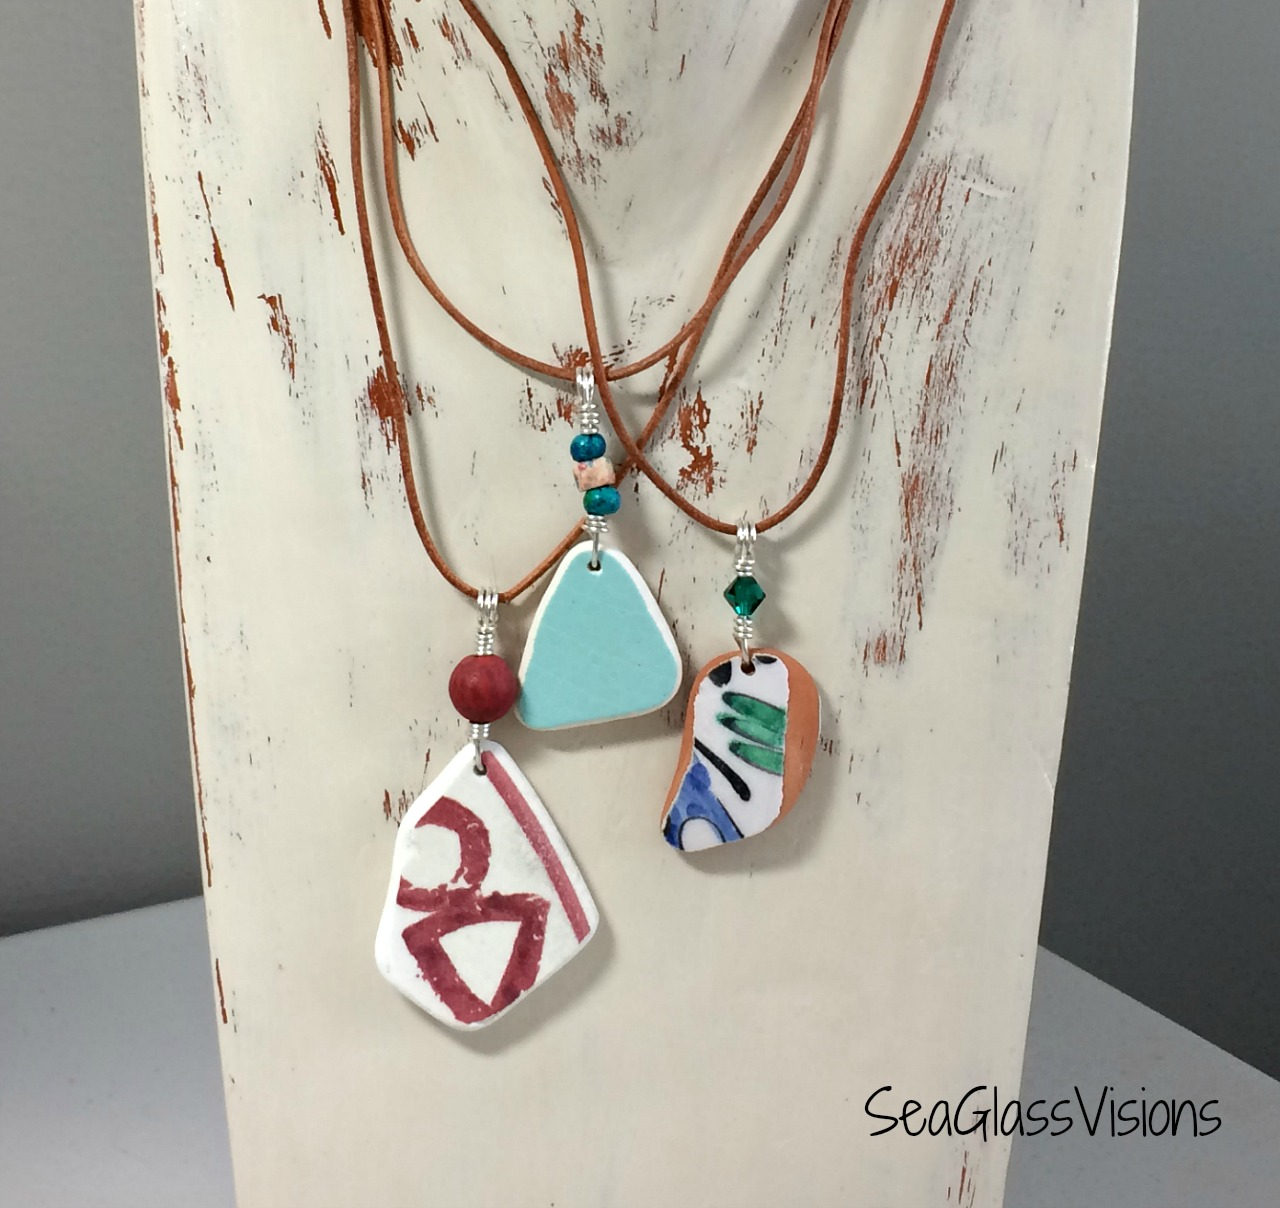 Greek Sea Pottery Jewelry by SeaGlassVisions